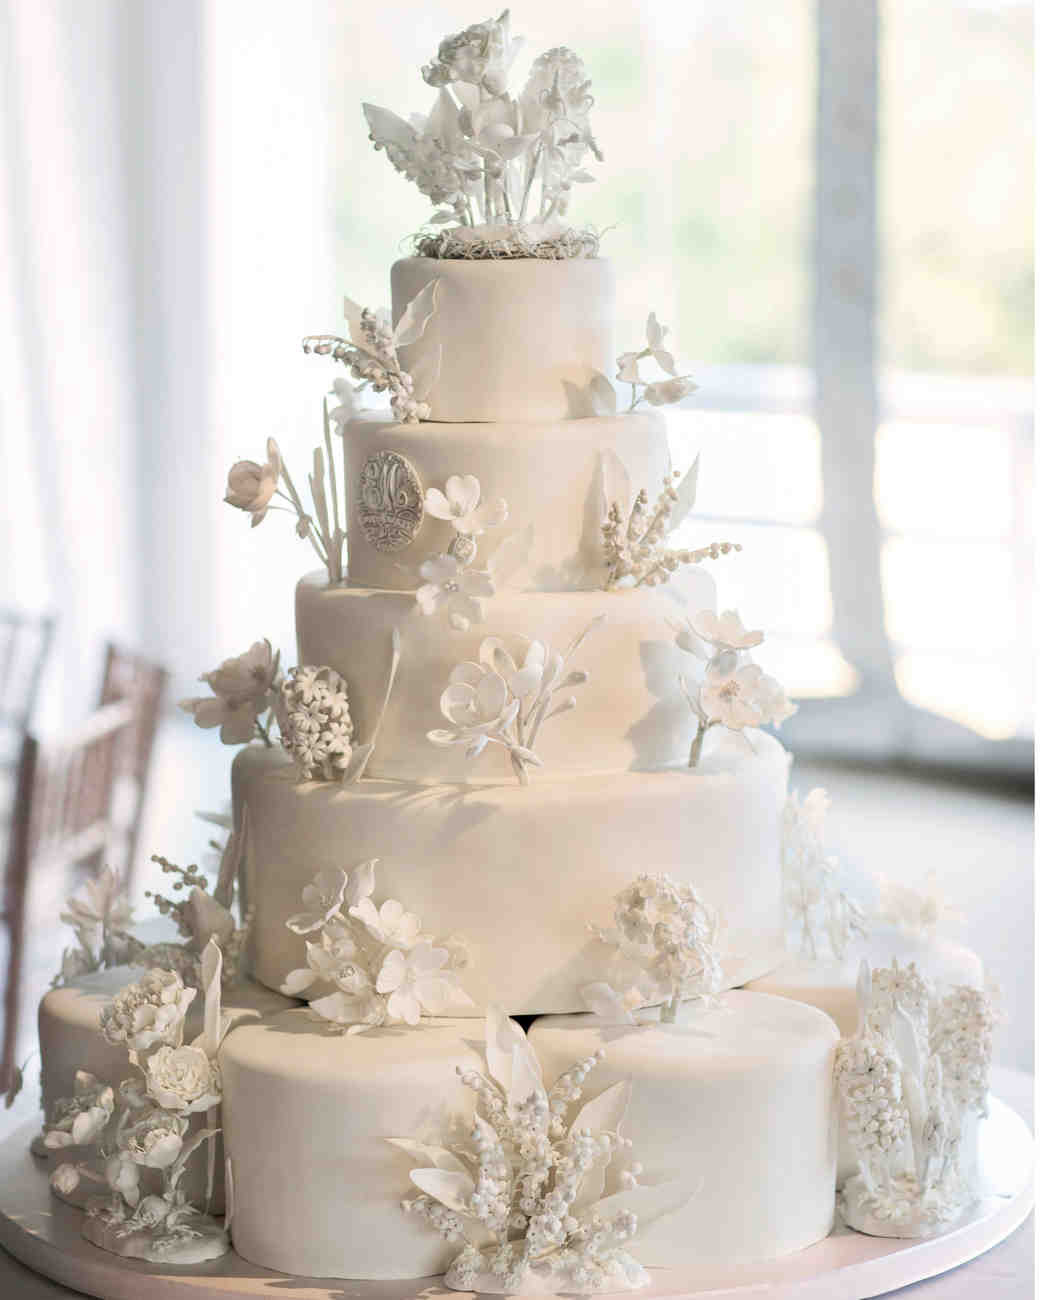 Wedding Cakes Images  45 Wedding Cakes With Sugar Flowers That Look Stunningly